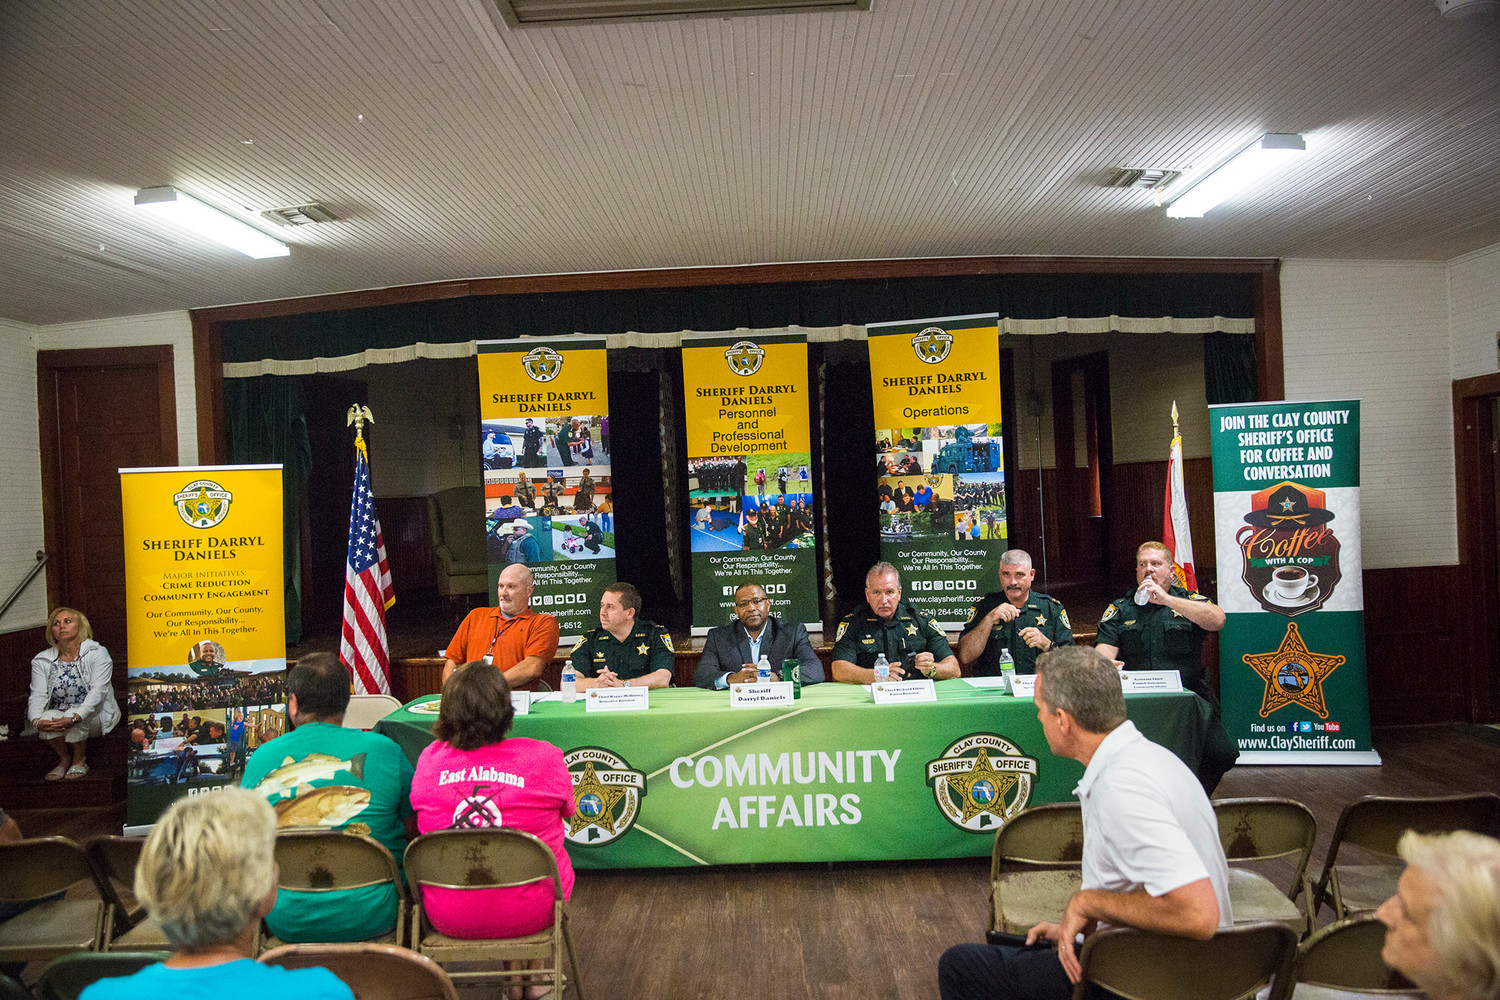 Sheriff Darryl Daniels and a team of deputies who serve as Chiefs in the various departments of the Sheriff's Office sat on a panel Monday evening in Middleburg to discuss current law enforcement initiatives with the community.